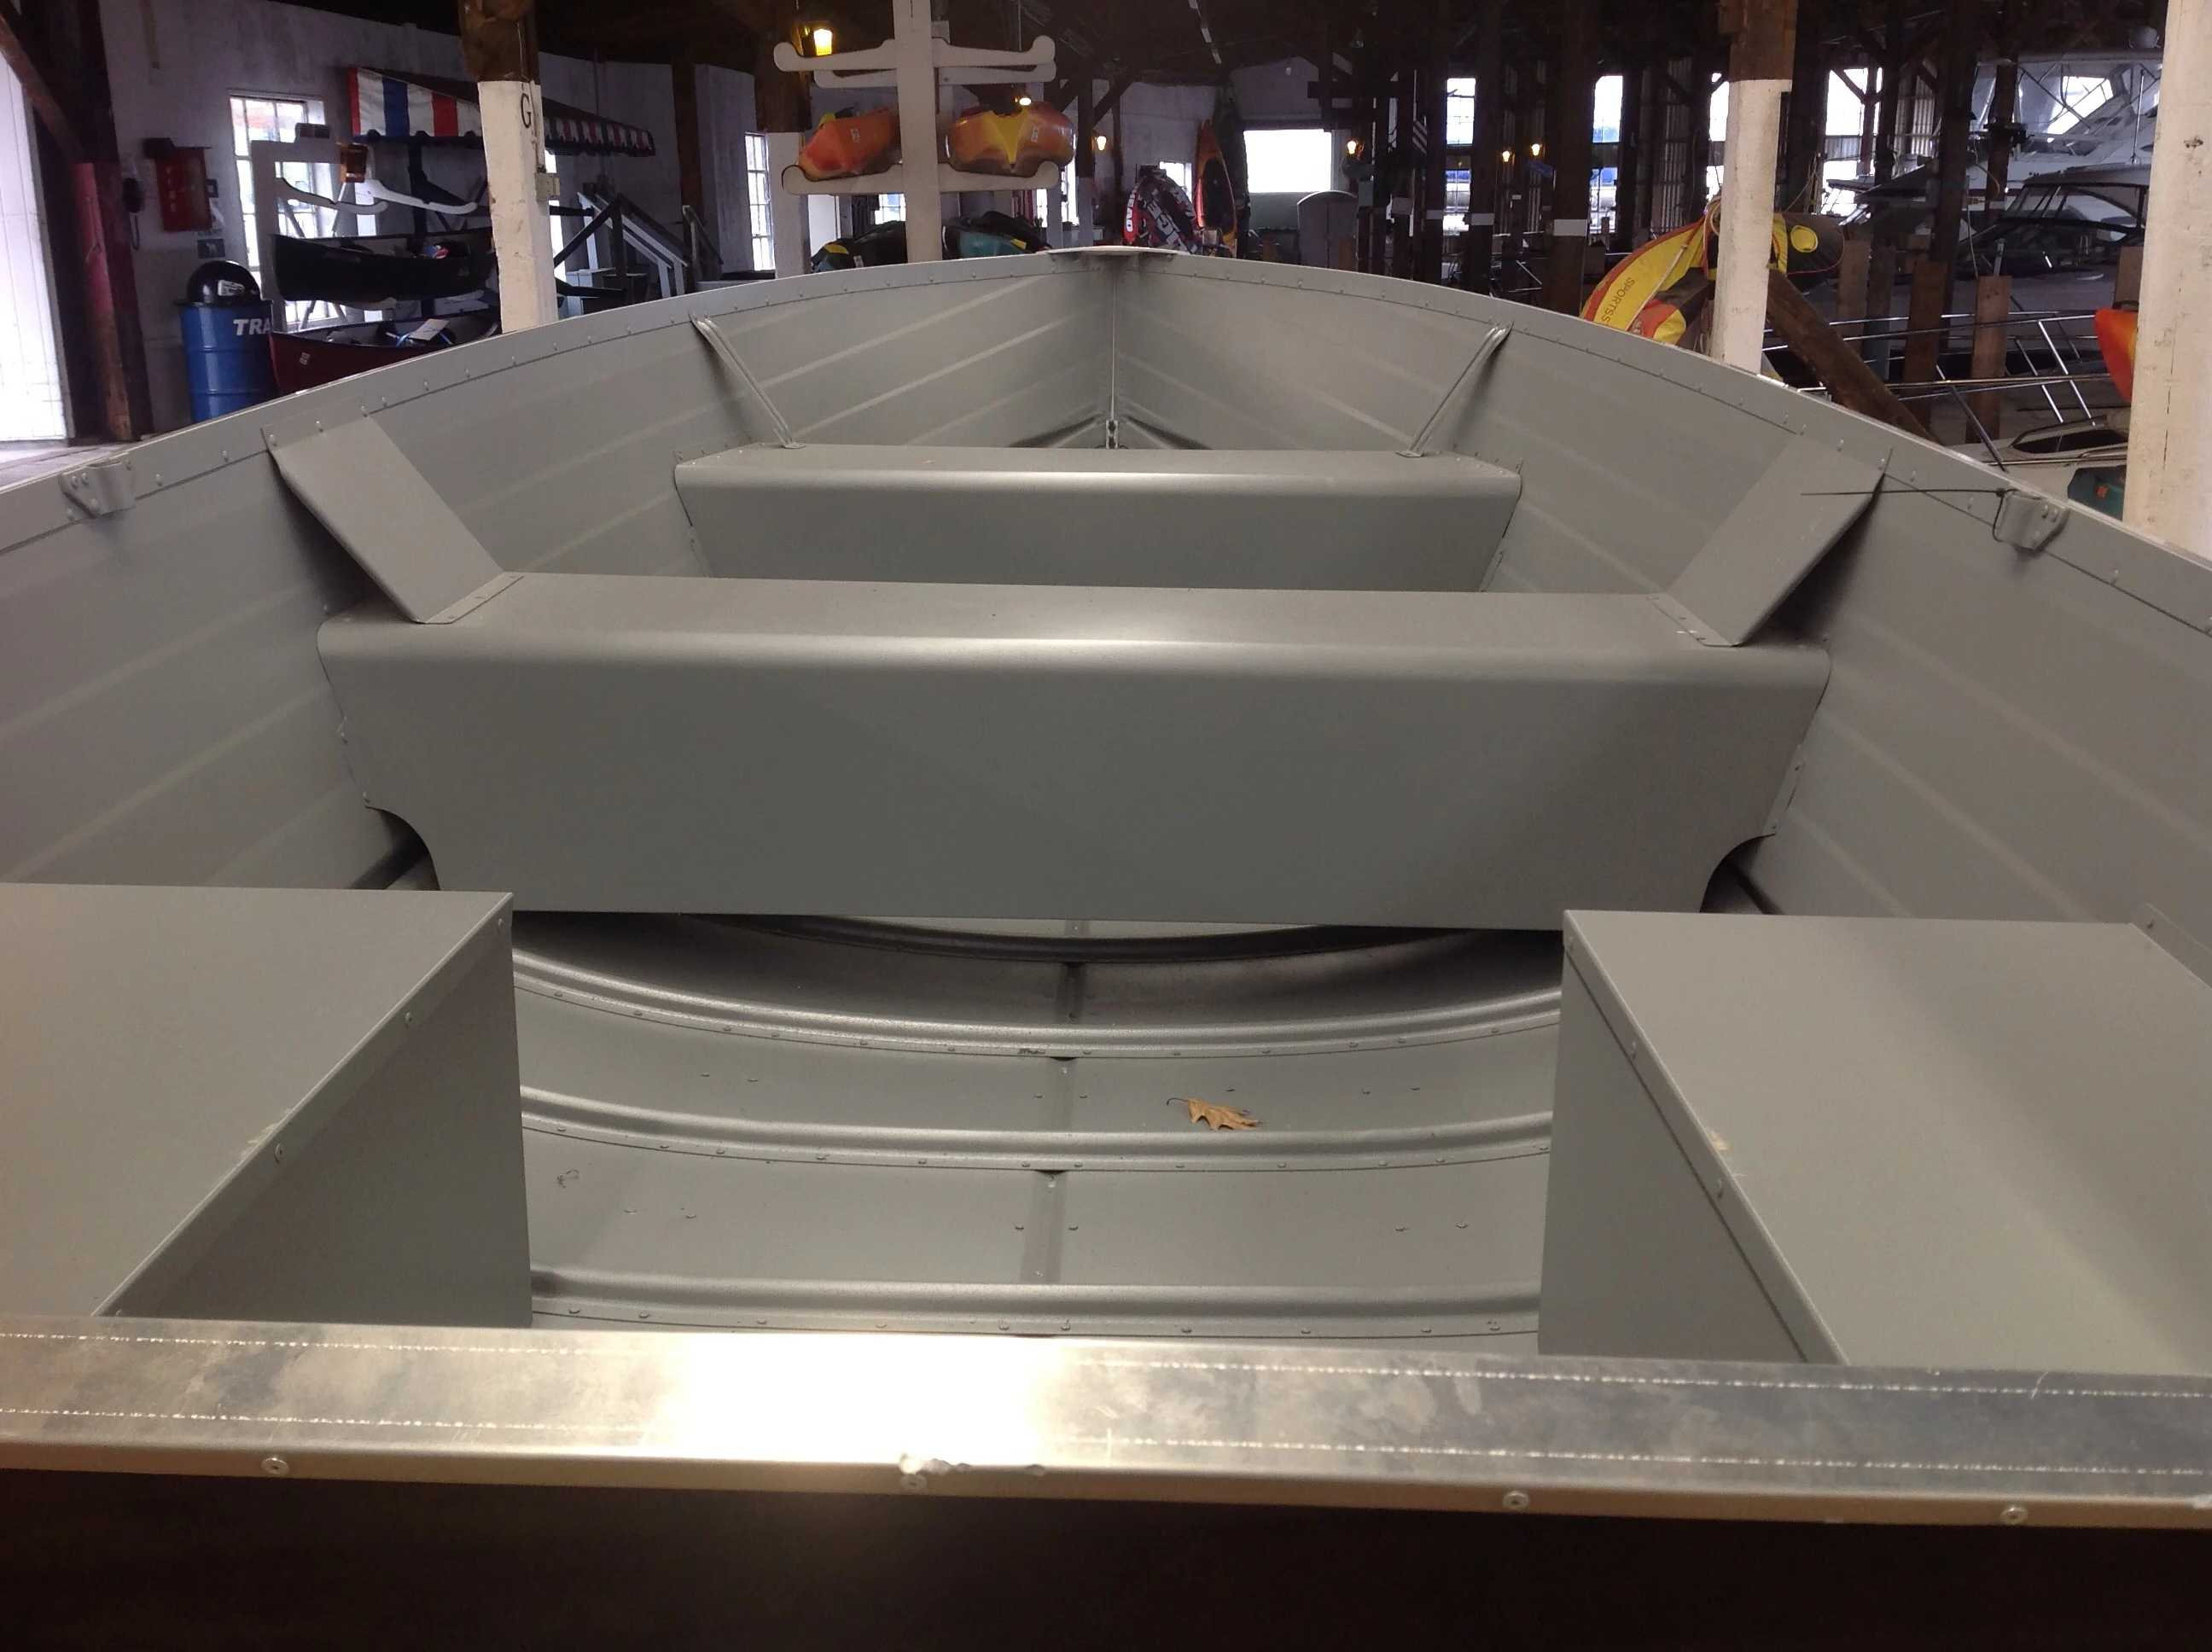 2021 Smoker Craft boat for sale, model of the boat is 14 Voyager Tl Ss & Image # 7 of 8